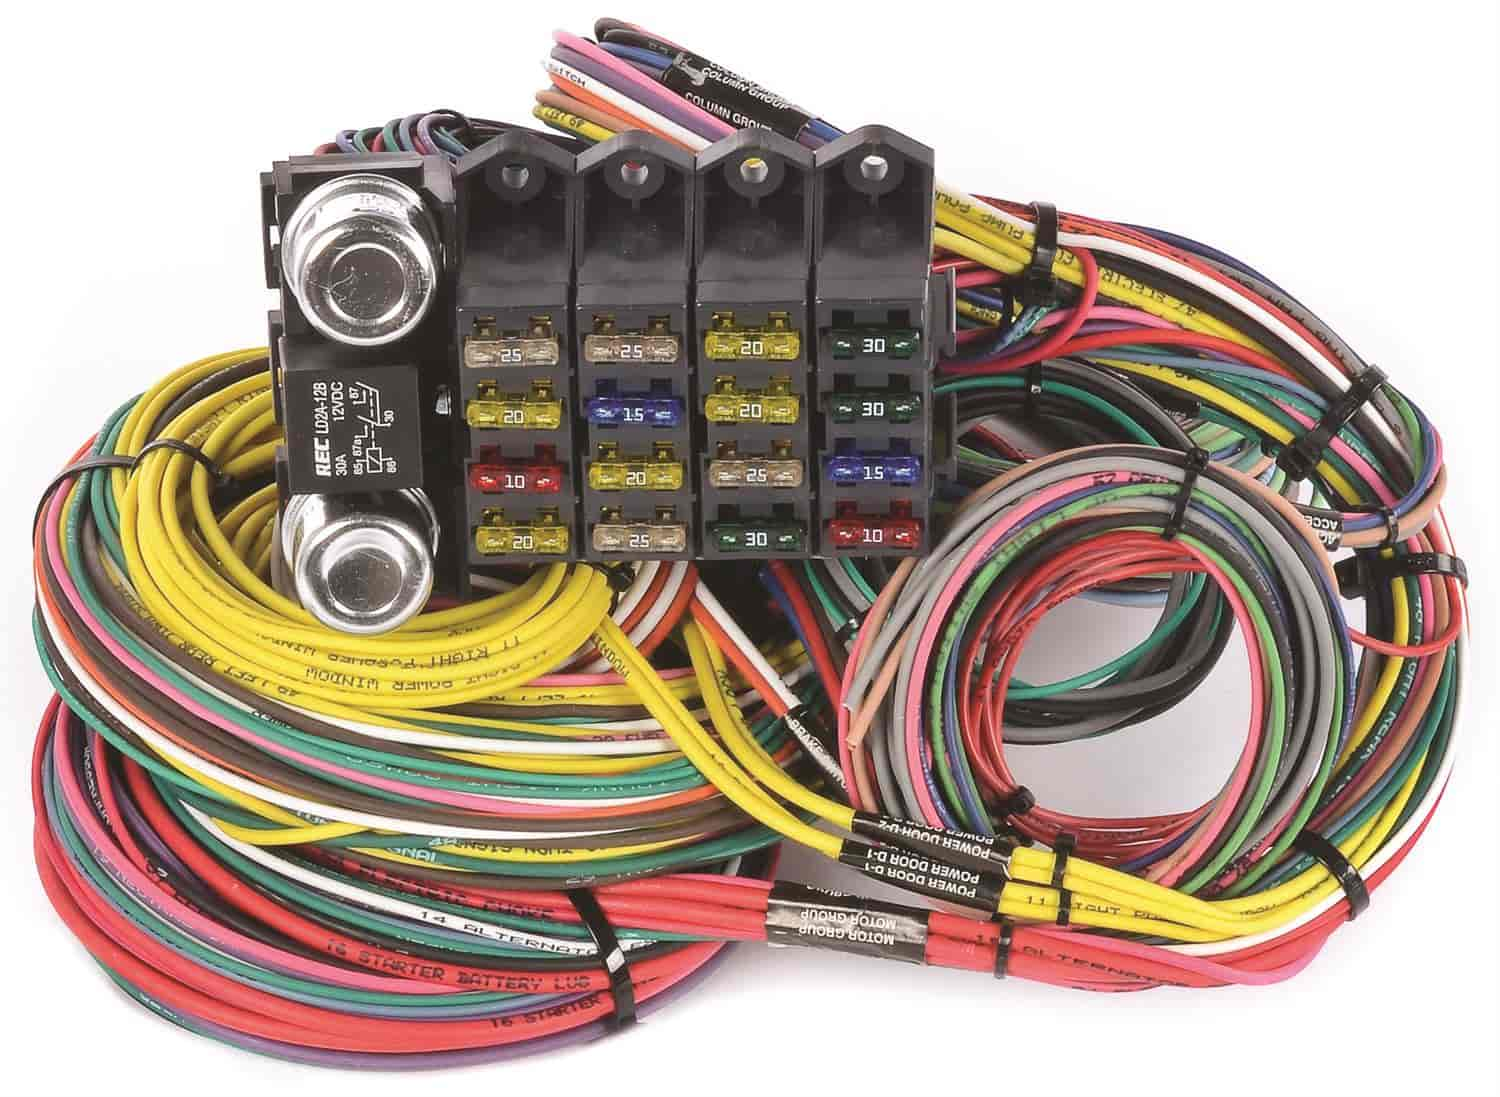 555 10405 jegs performance products 10405 universal wiring harness, 20 GM Turn Signal Wiring at reclaimingppi.co